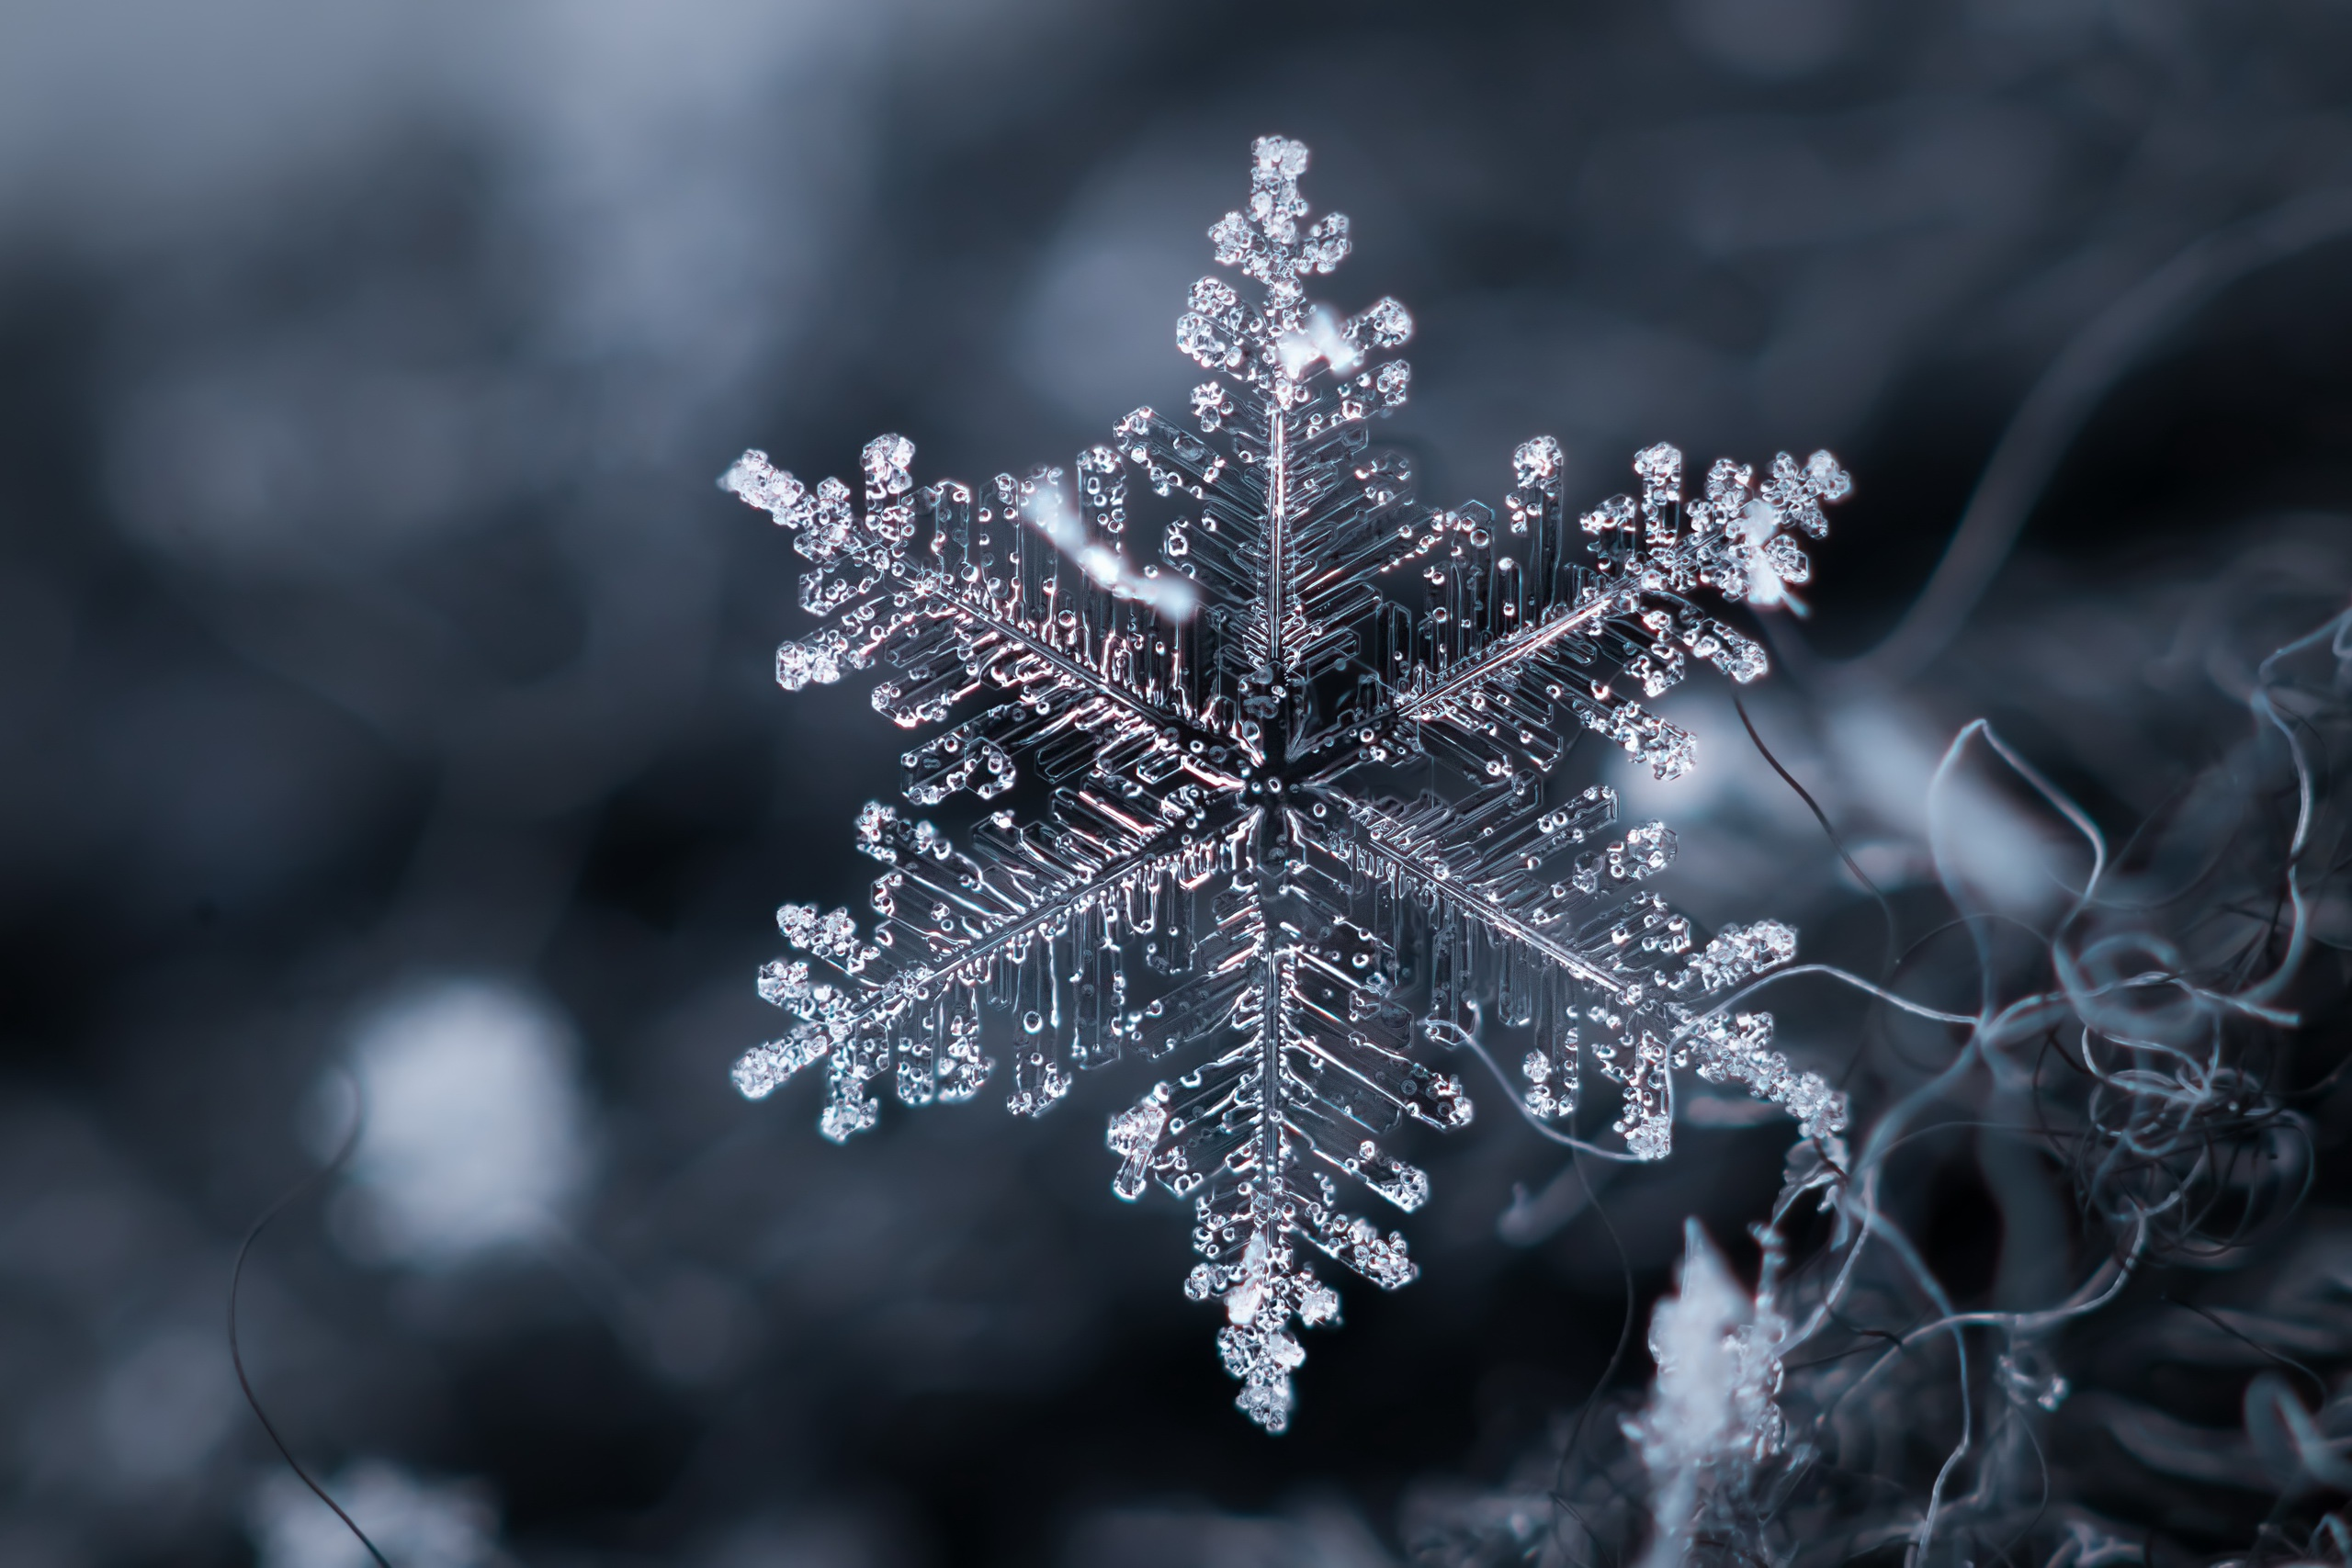 images of snowflakes - HD1600×1066